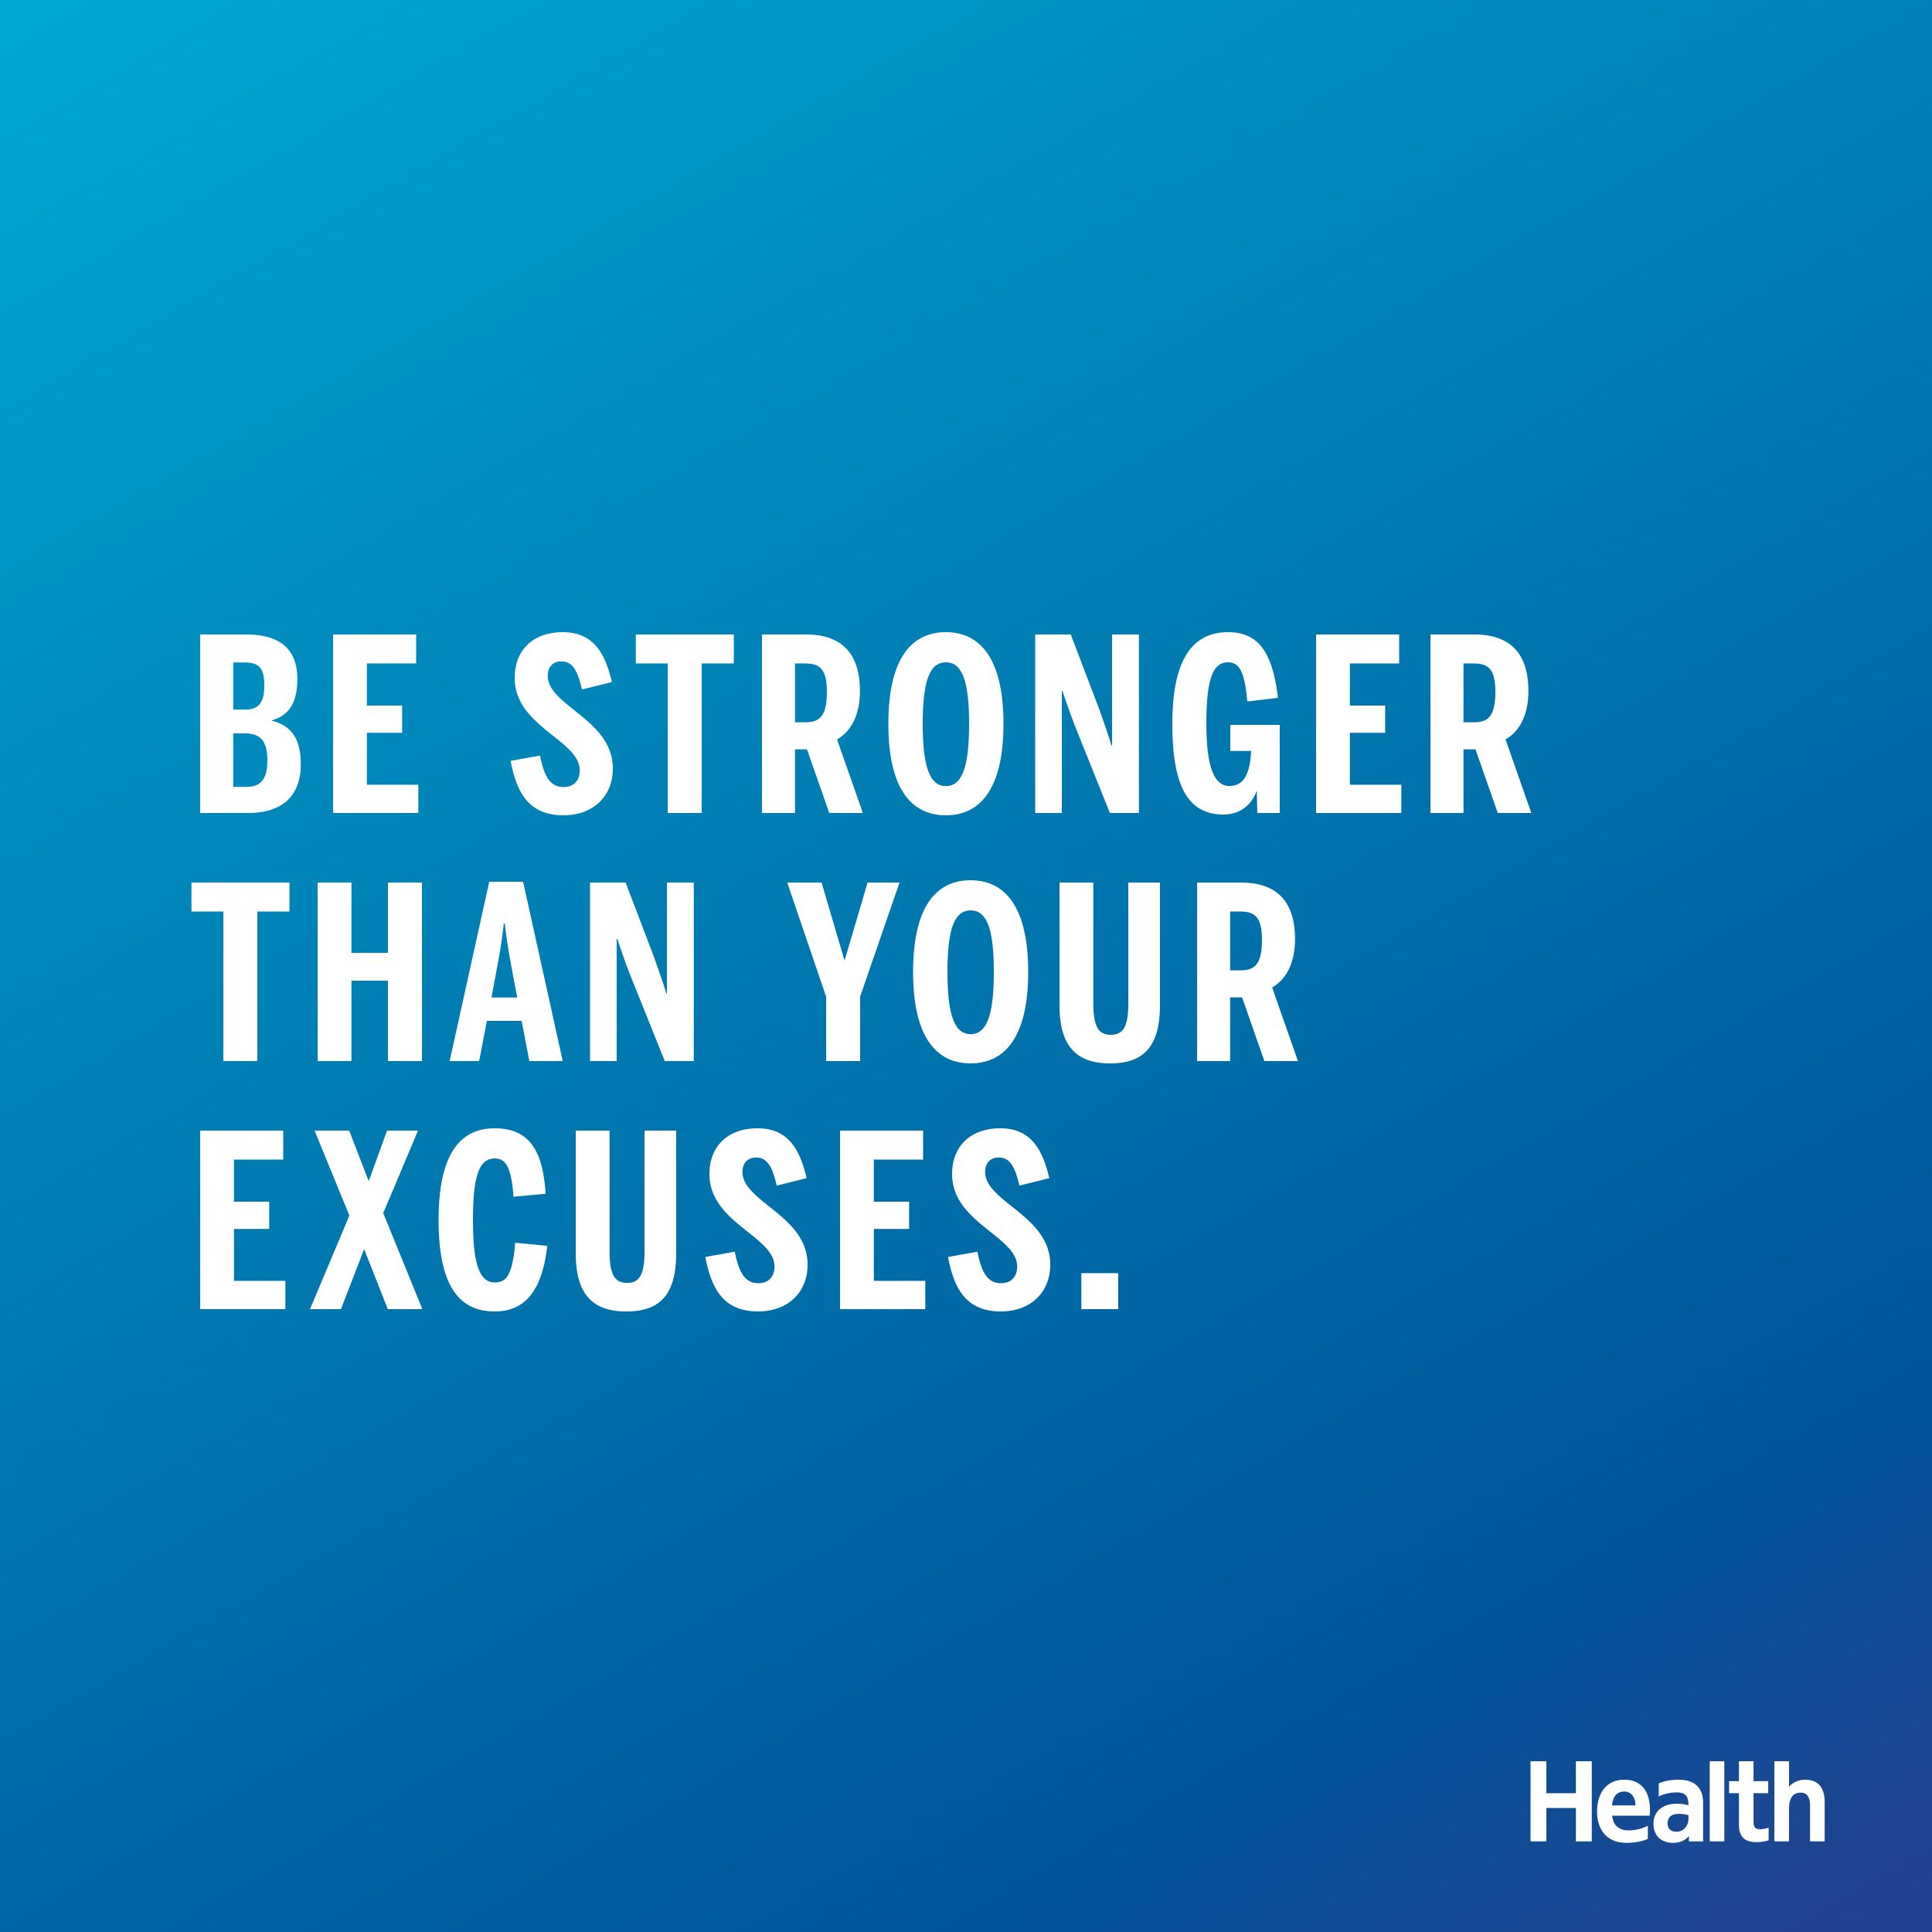 Stay Fit Motivation Quotes: Fitspiration! Stay Motivated With Your Weight Loss Plan Or